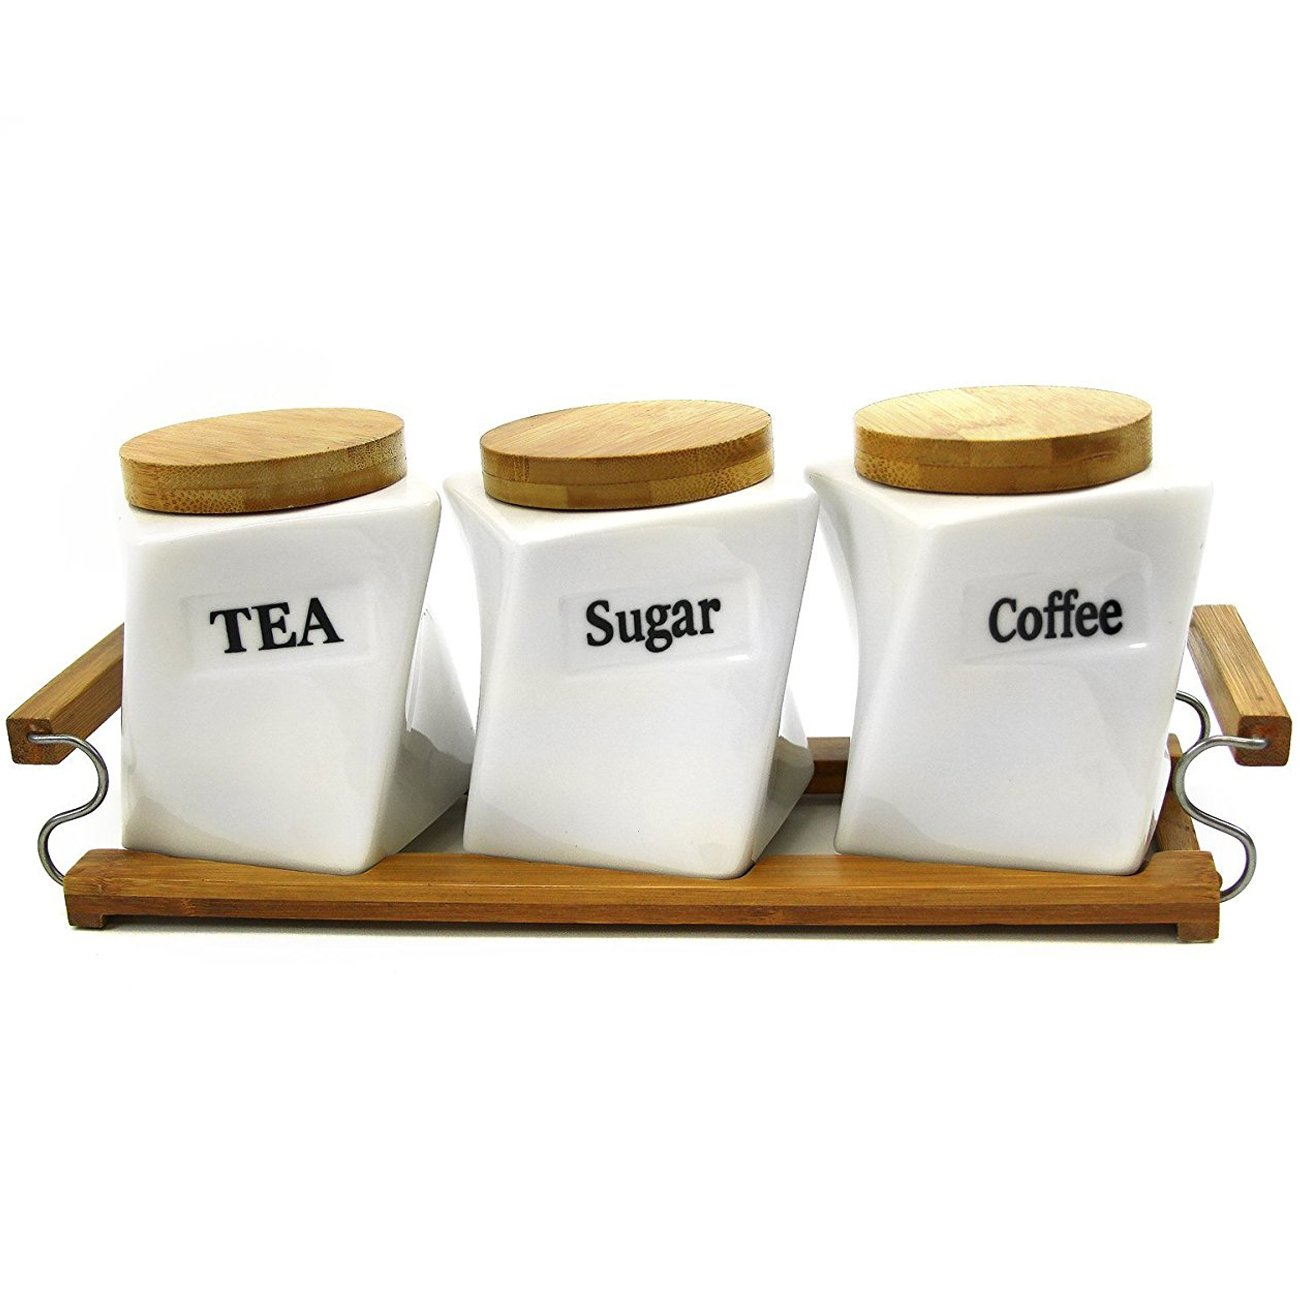 SET OF 3 CANISTERS COFFEE TEA SUGAR BAMBOO HOLDER KITCHEN STORAGE JAR CONTAINER OOTB